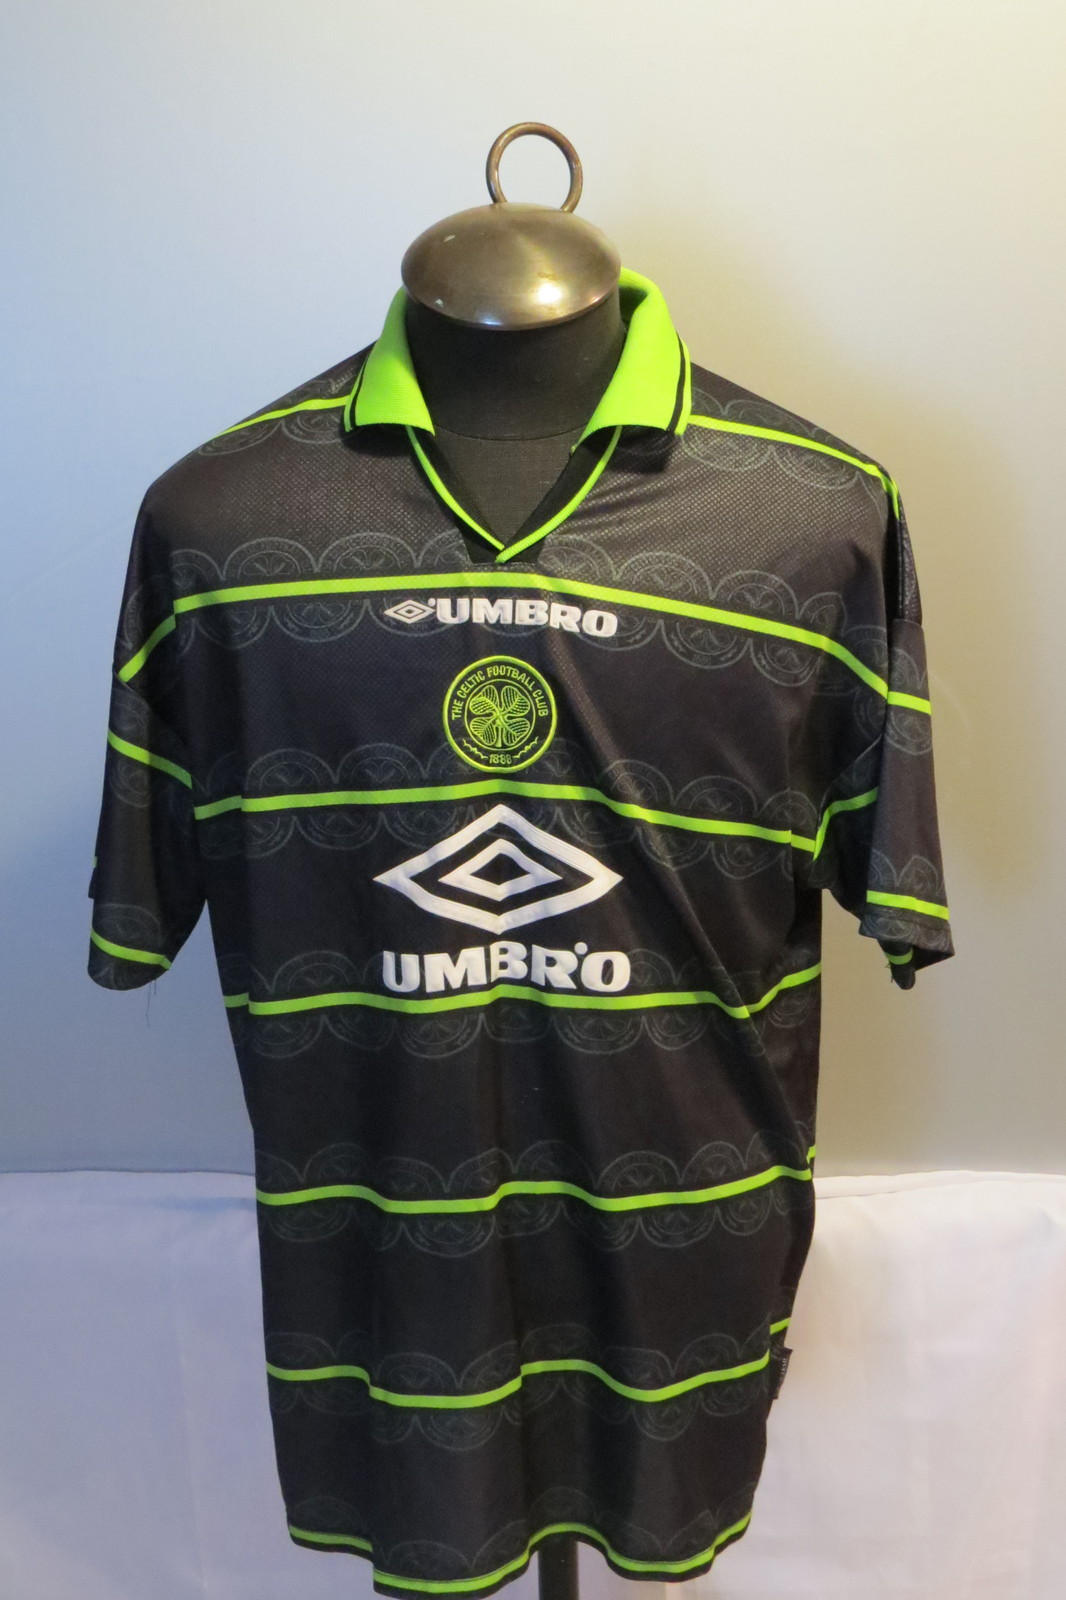 Glasgow celtic jersey retro away jersey 1998 99 by for Irish jewelry stores in nj